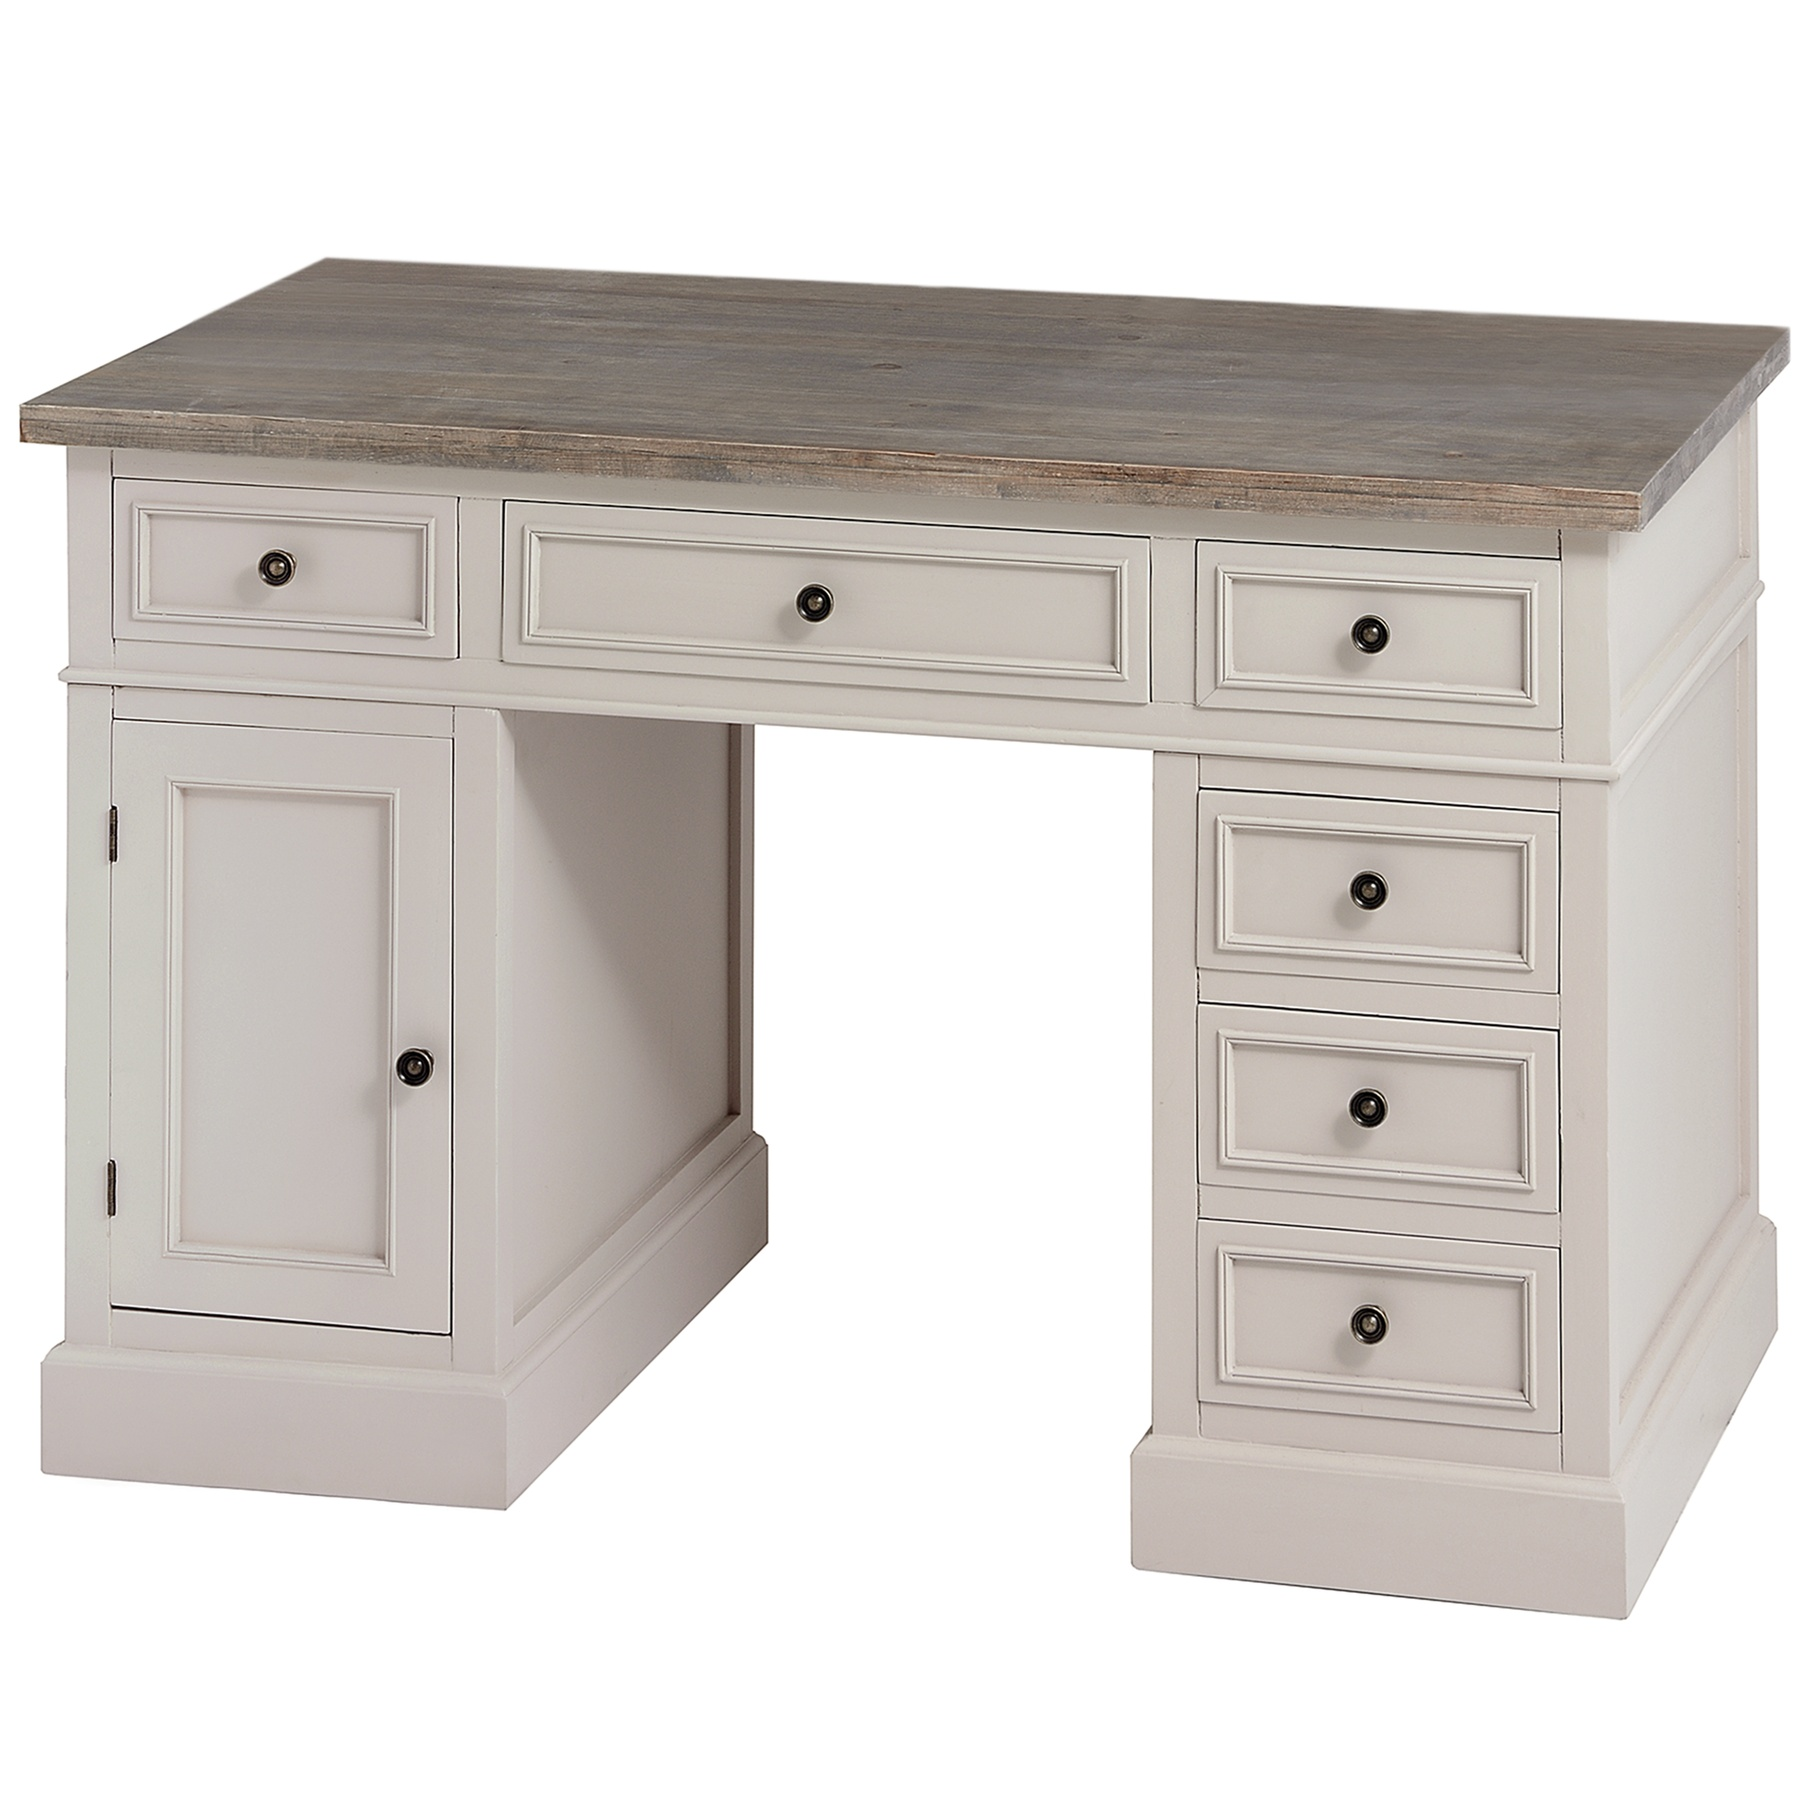 The Studley Collection Desk